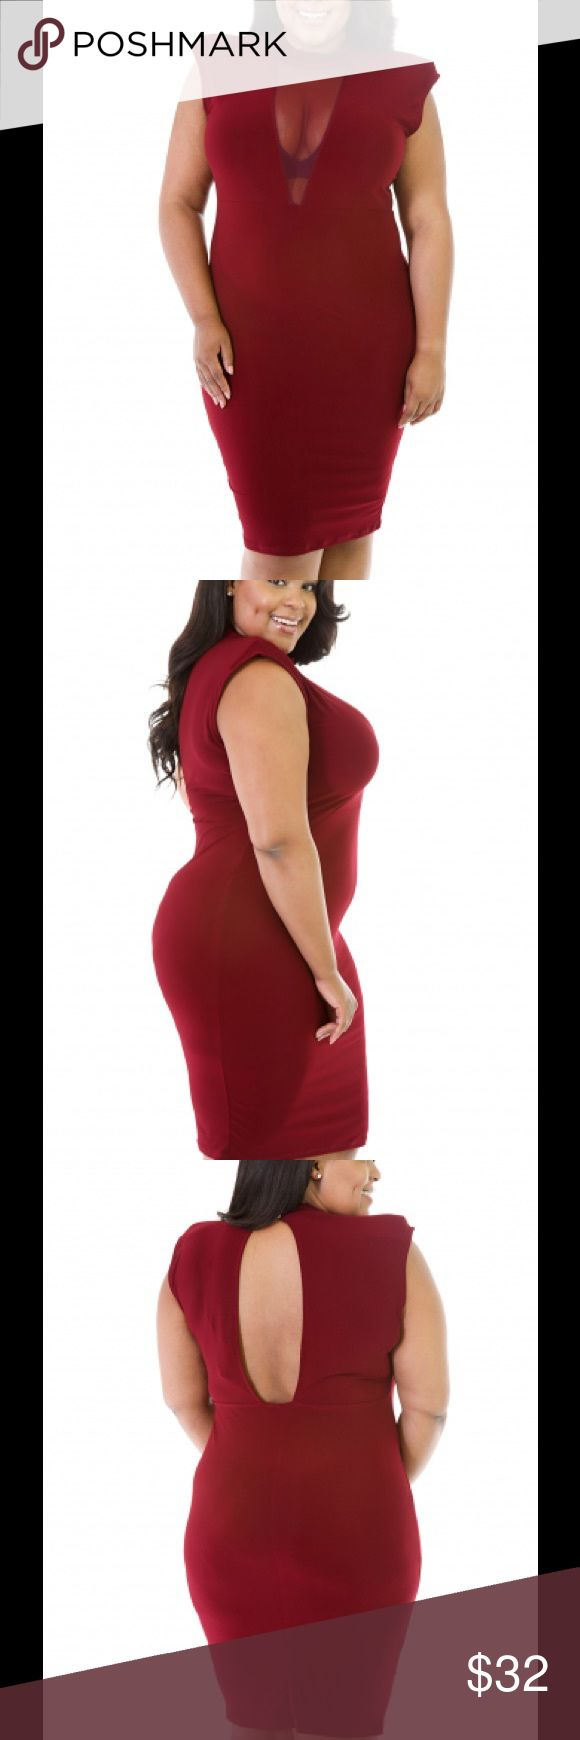 Sexy Merlot Dress Plus Size 1X and 3X Cute Merlot colored dress.  Great for a night out on the town! Dresses